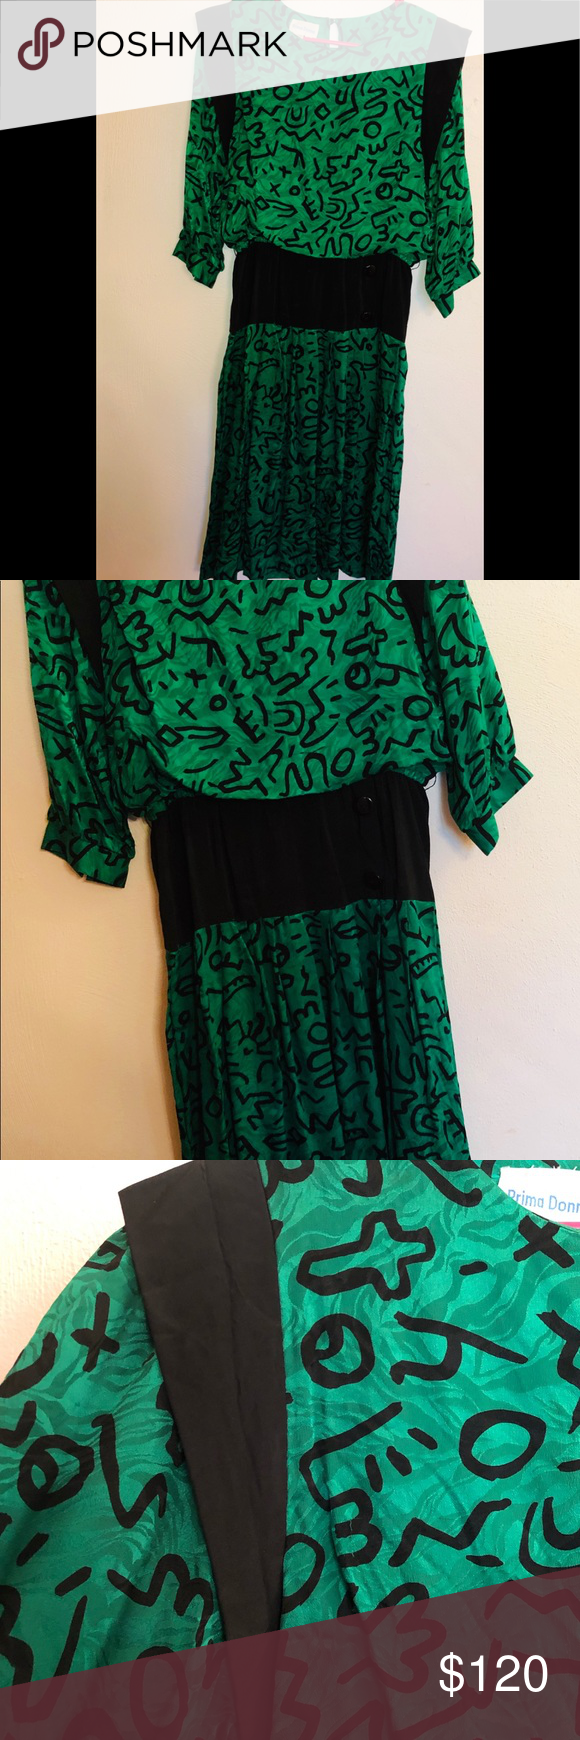 Silk 1980's New Wave EMO Dress Geometric Vintage Green and Black Geometric Pattern. Midi Dress with 1980's Triangle or Wing Pieces on the Shoulder. Waist is a band of material with buttons giving it that true Retro design.